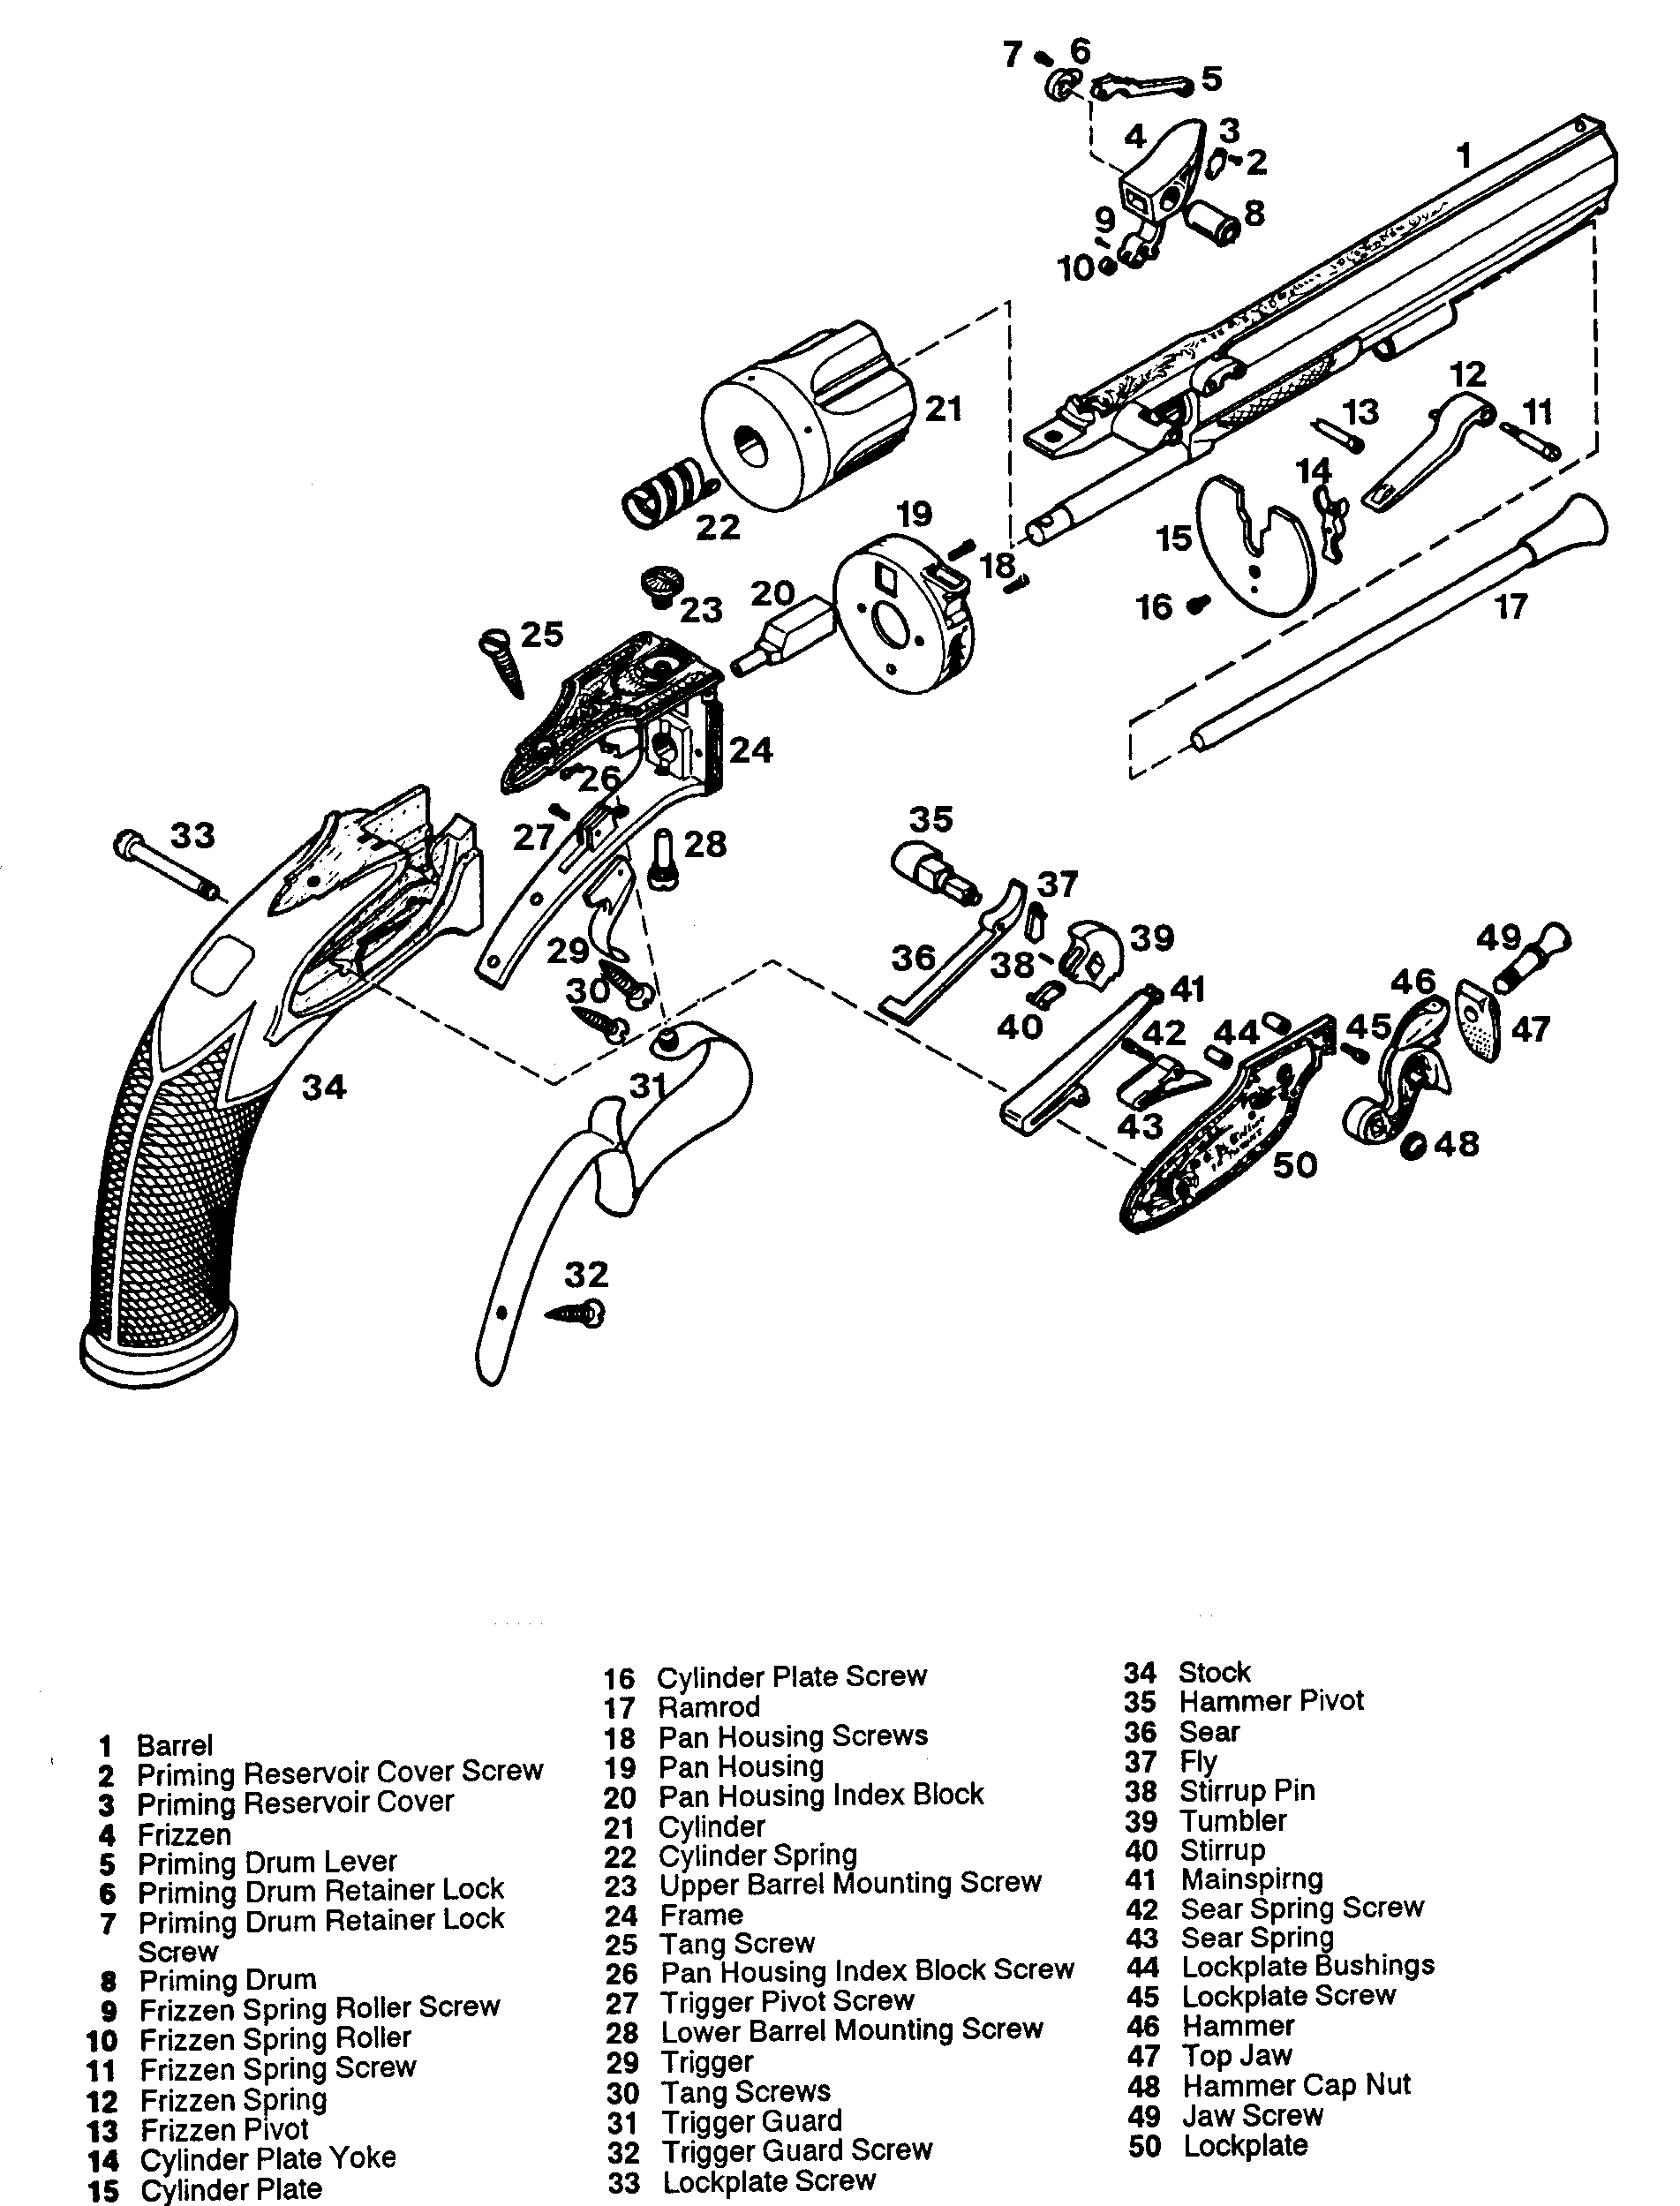 Blueprint Flint Pistol